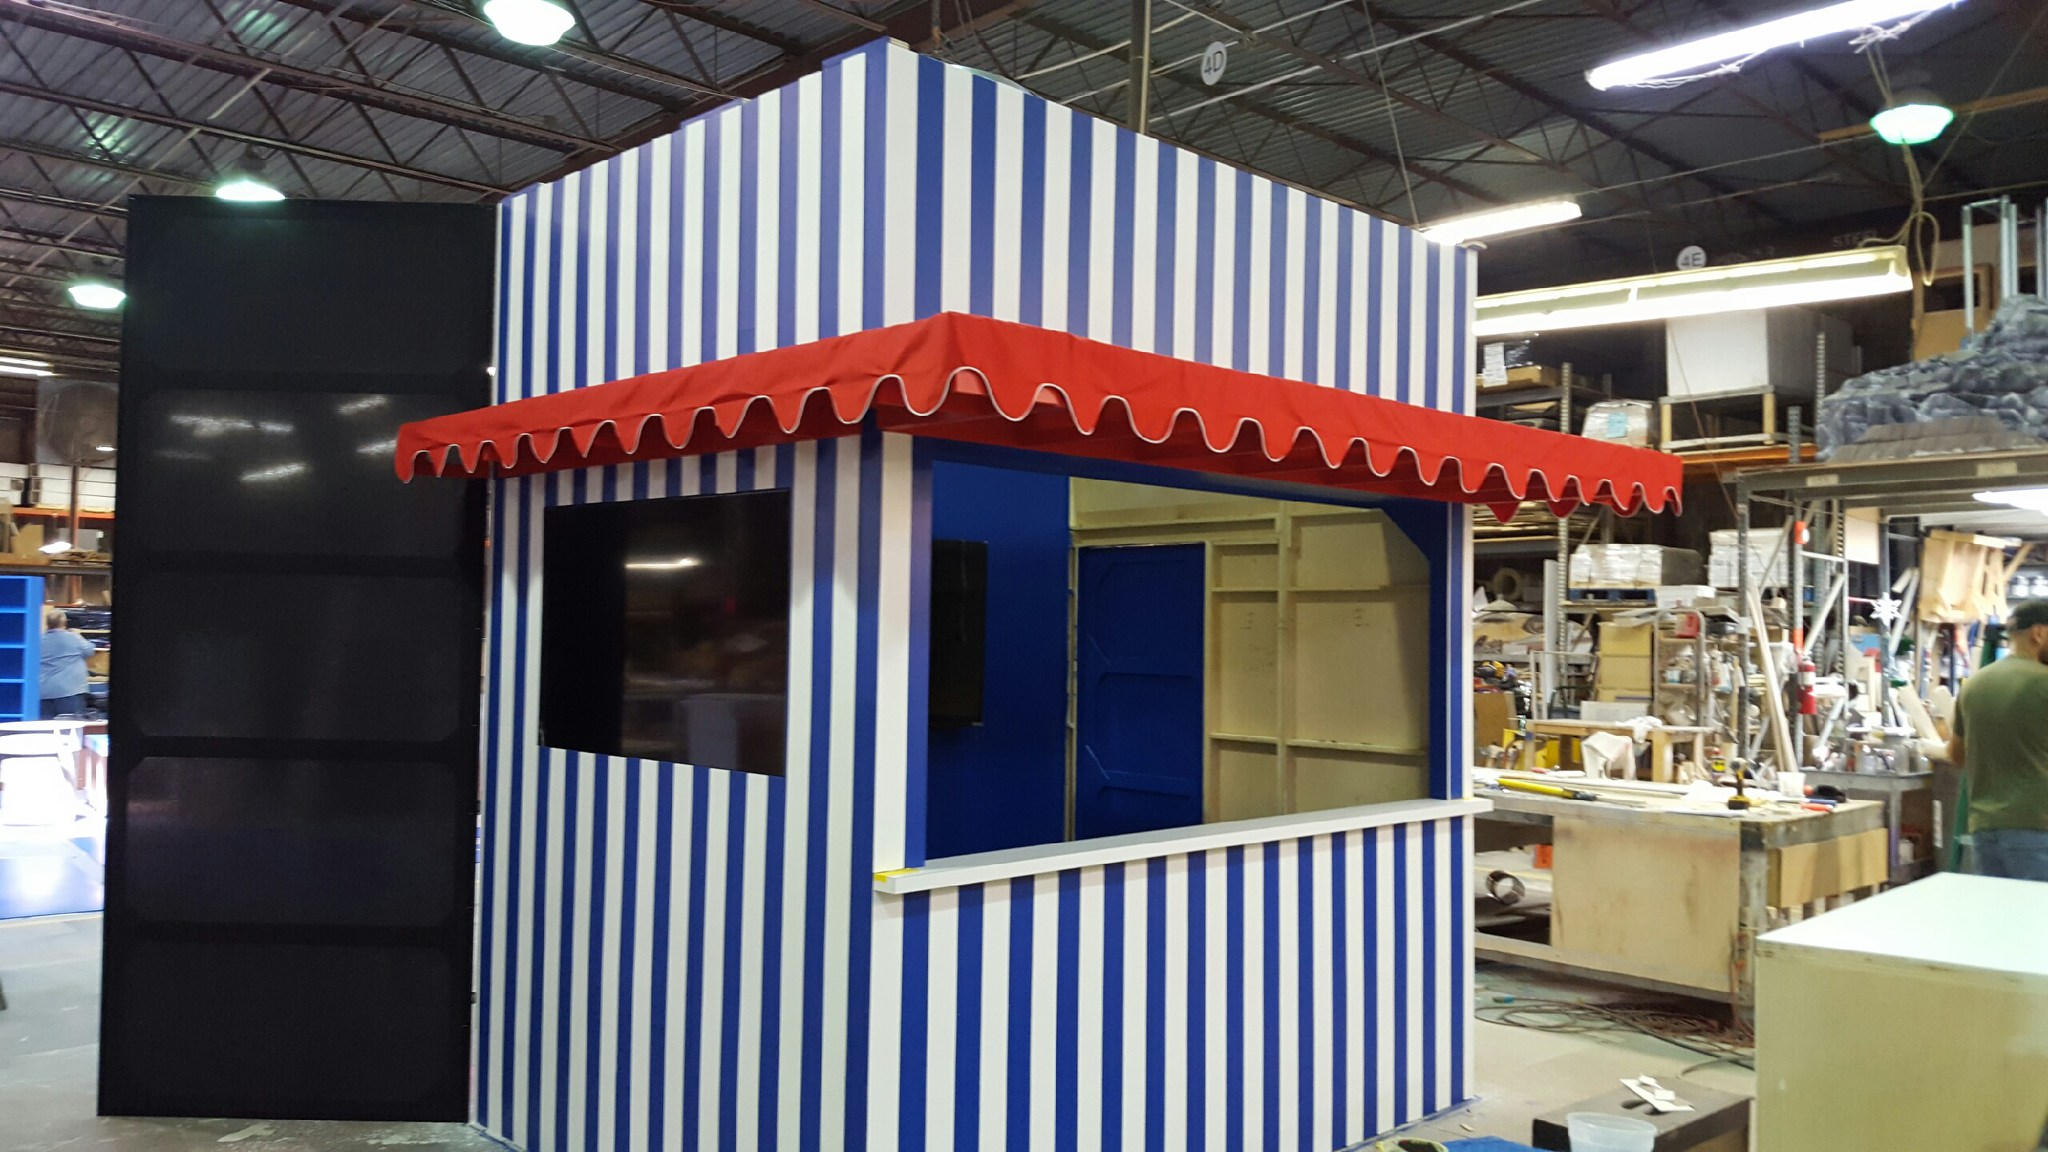 Striped booth with red awning – constructed the awning. Created the scalloped drop. It is piped in white. Had to do the math to make the scallops the right size.